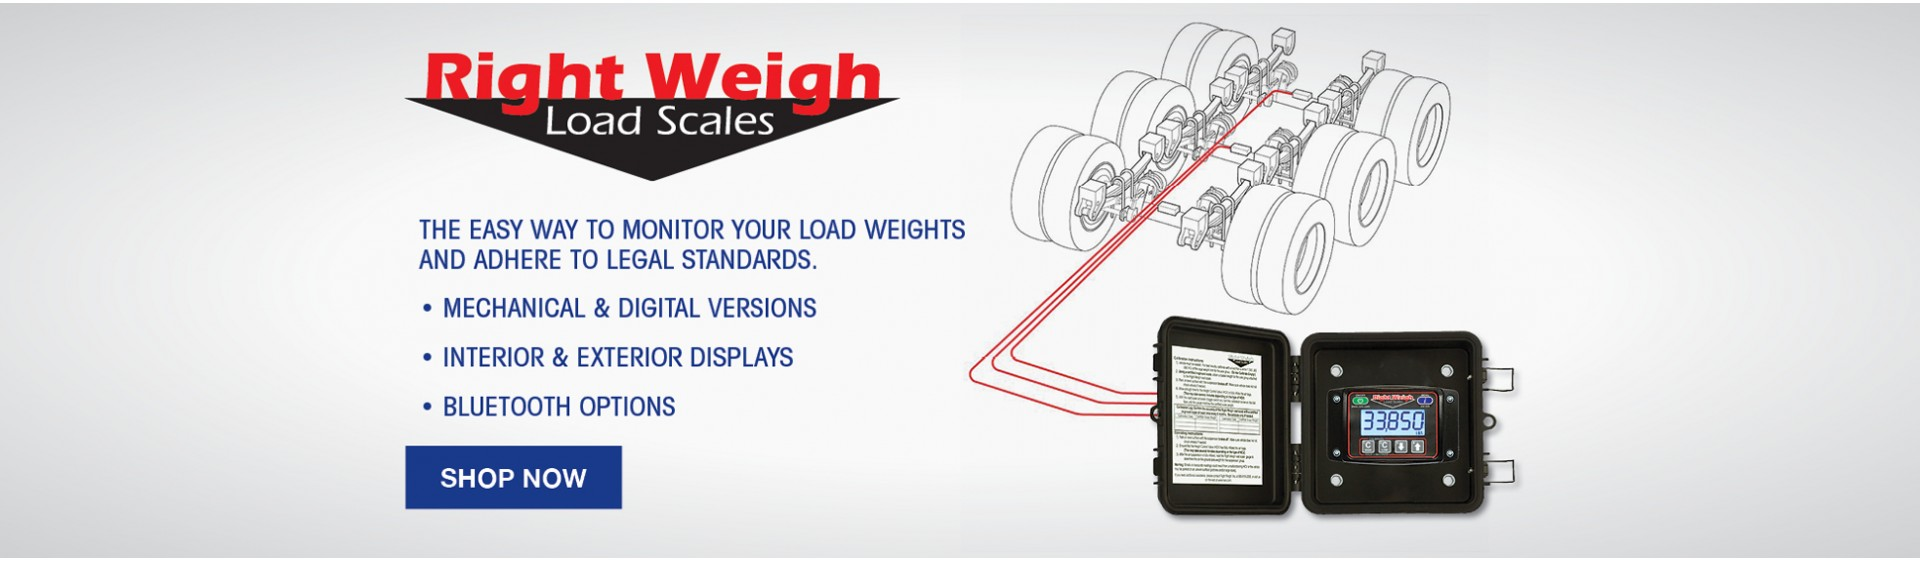 Right Weigh Load Scale